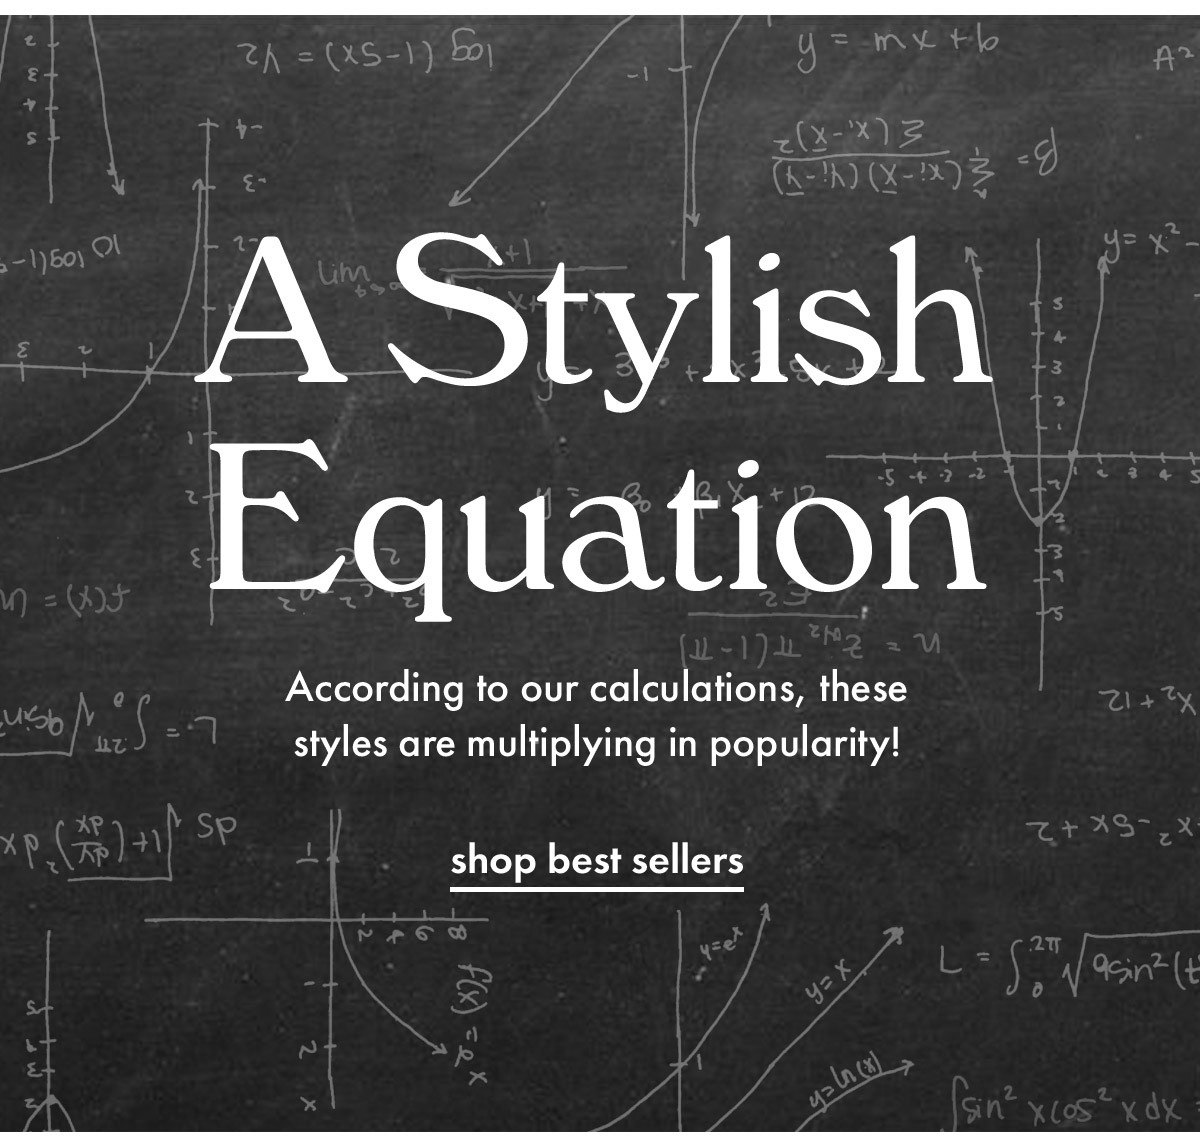 A stylish equation